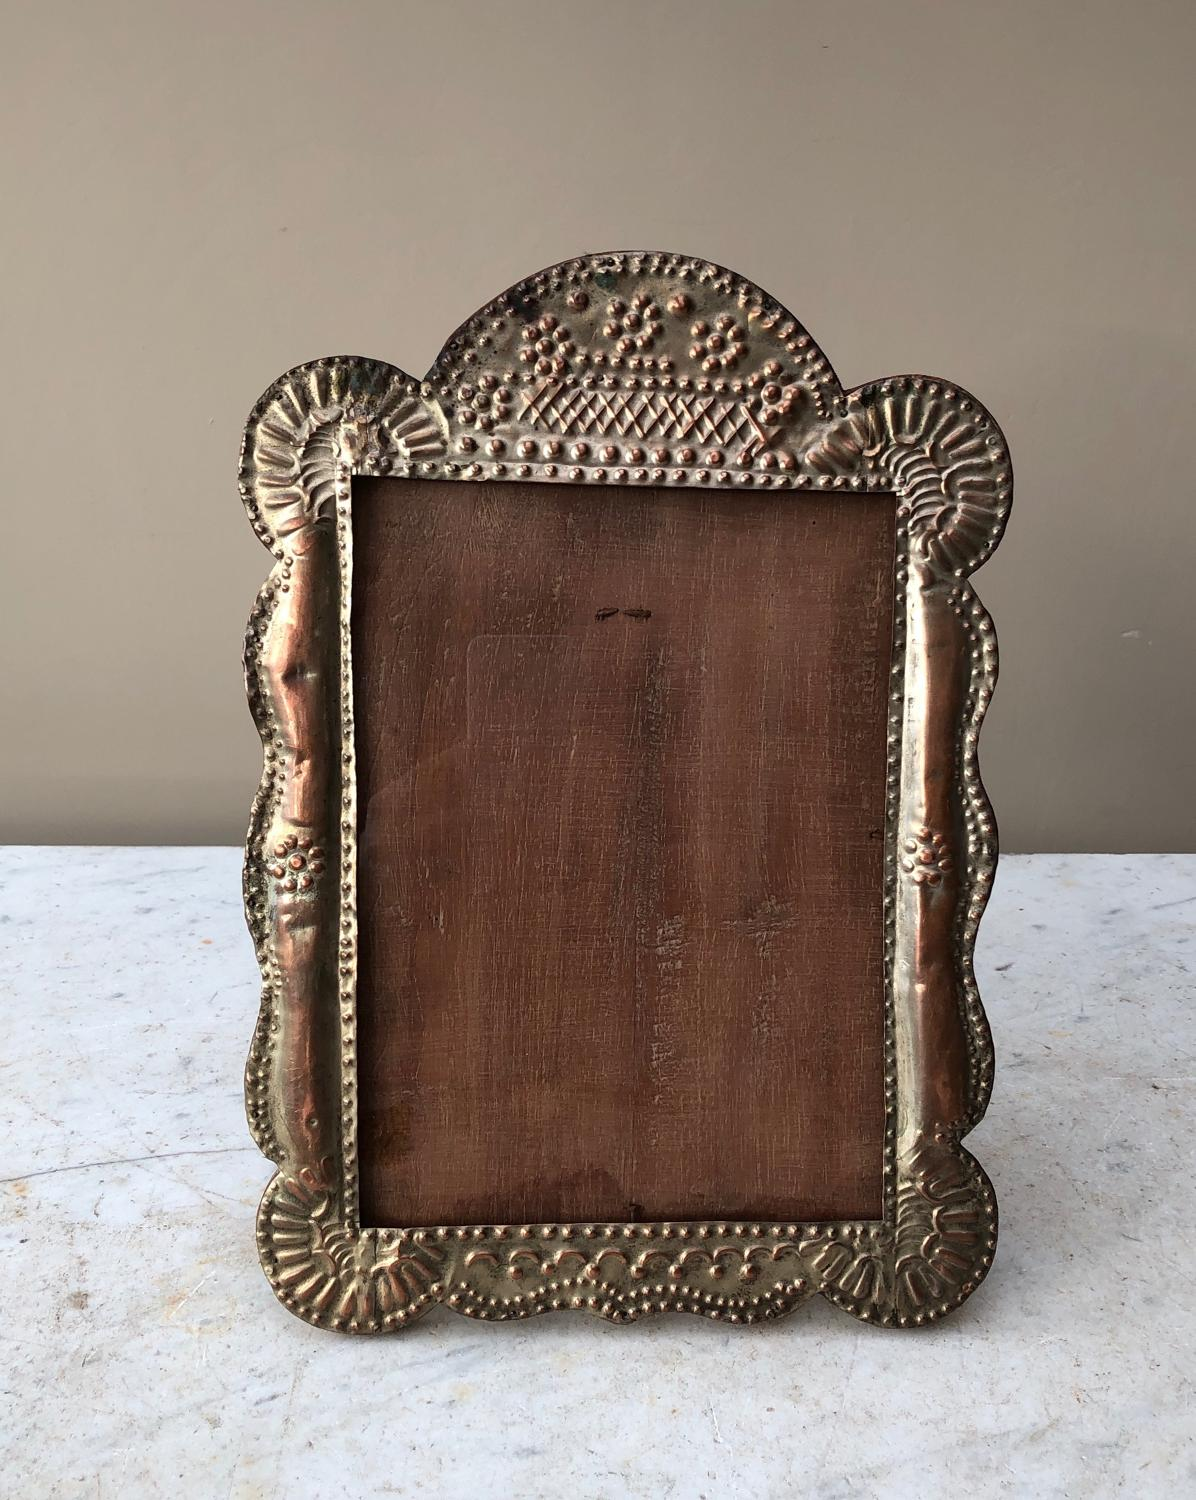 1950s Large Pressed Metal Photograph Frame